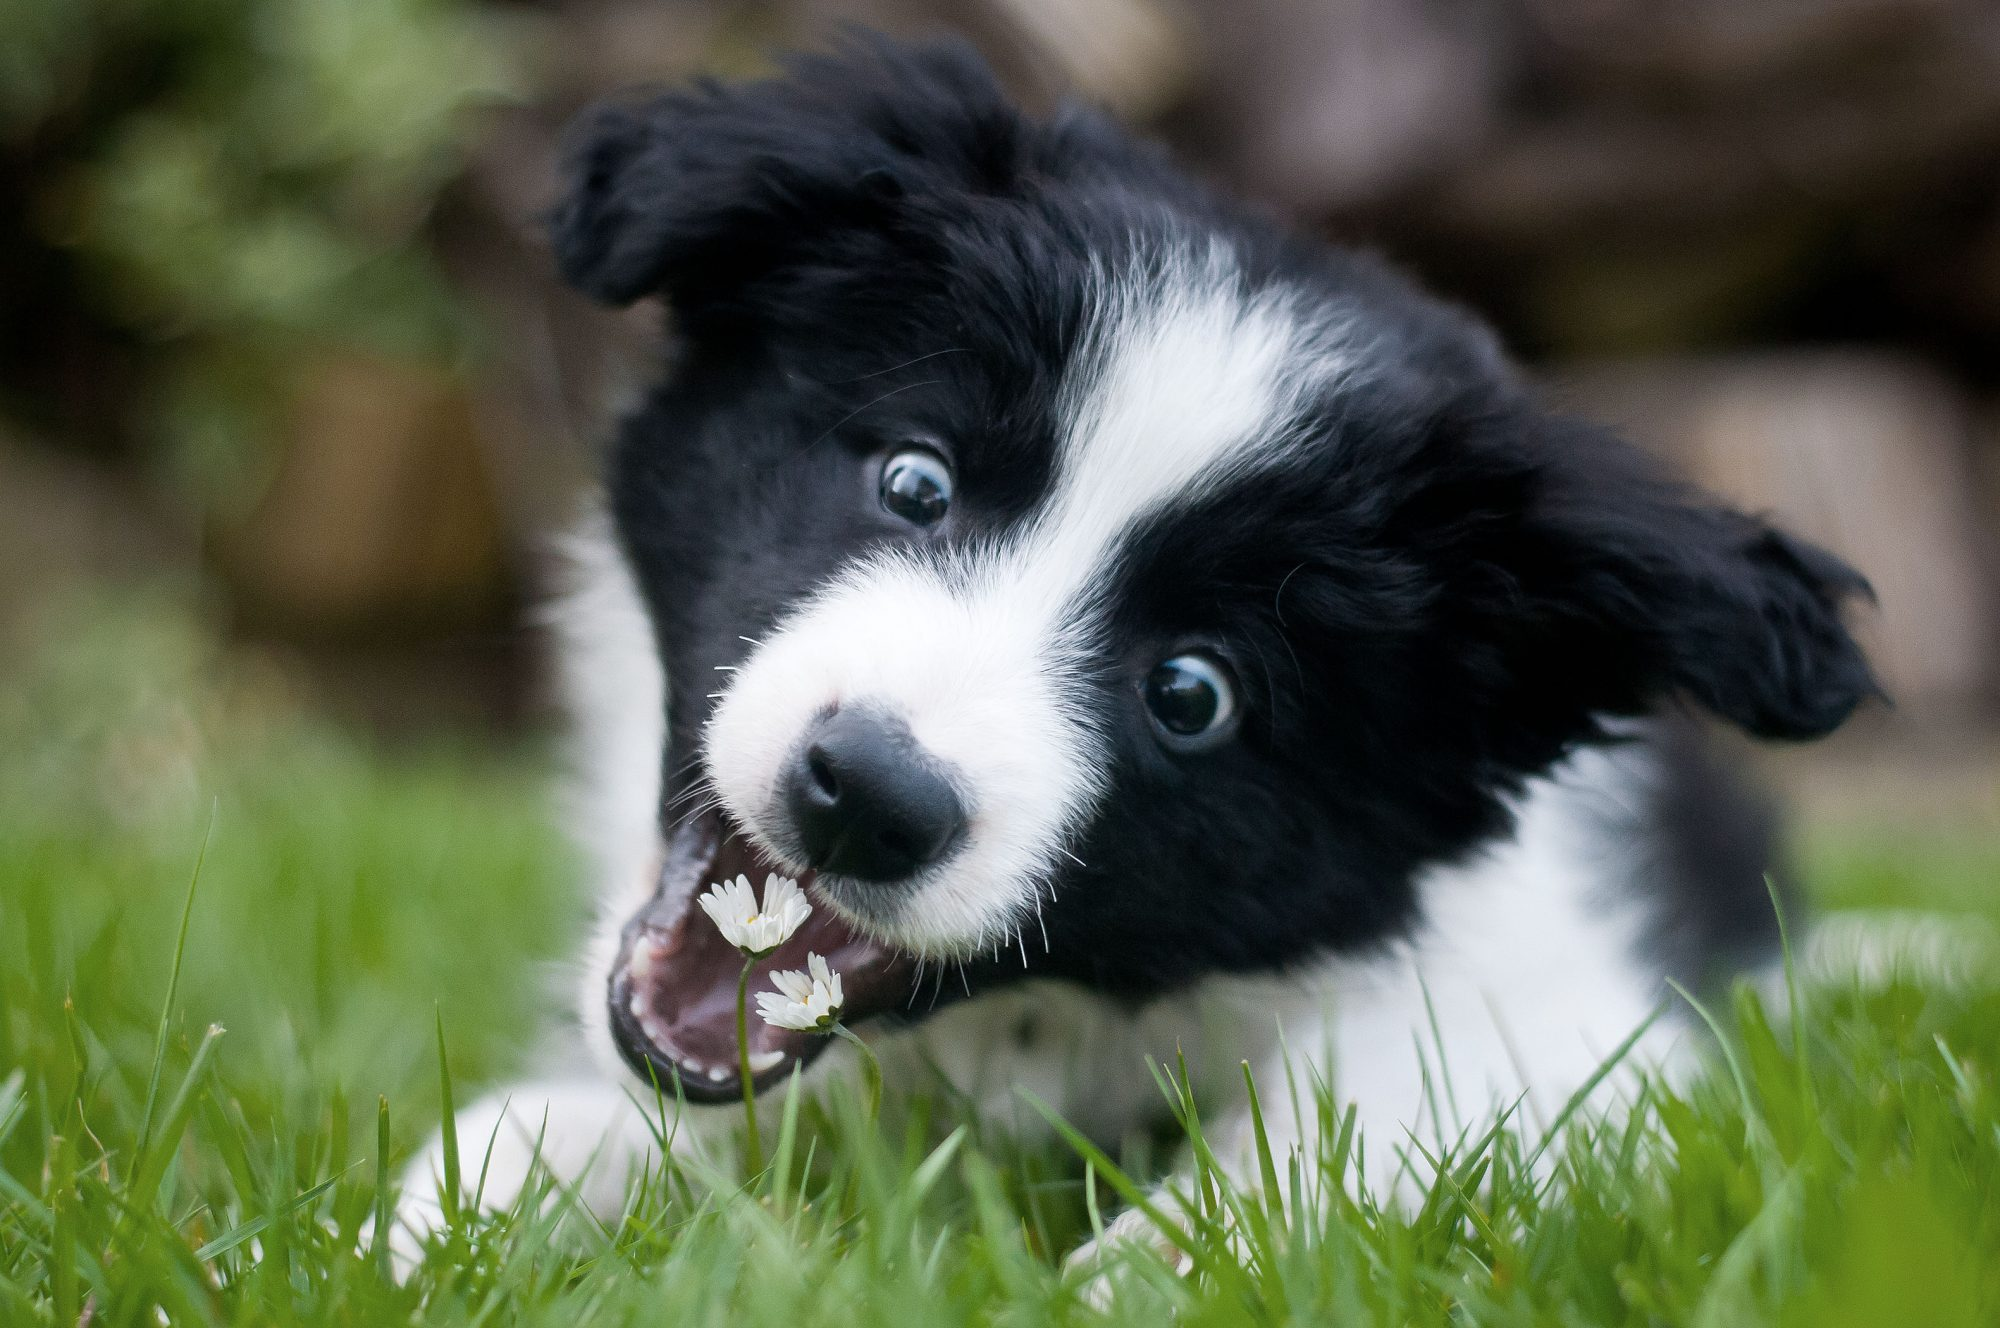 black and white dog eating grass